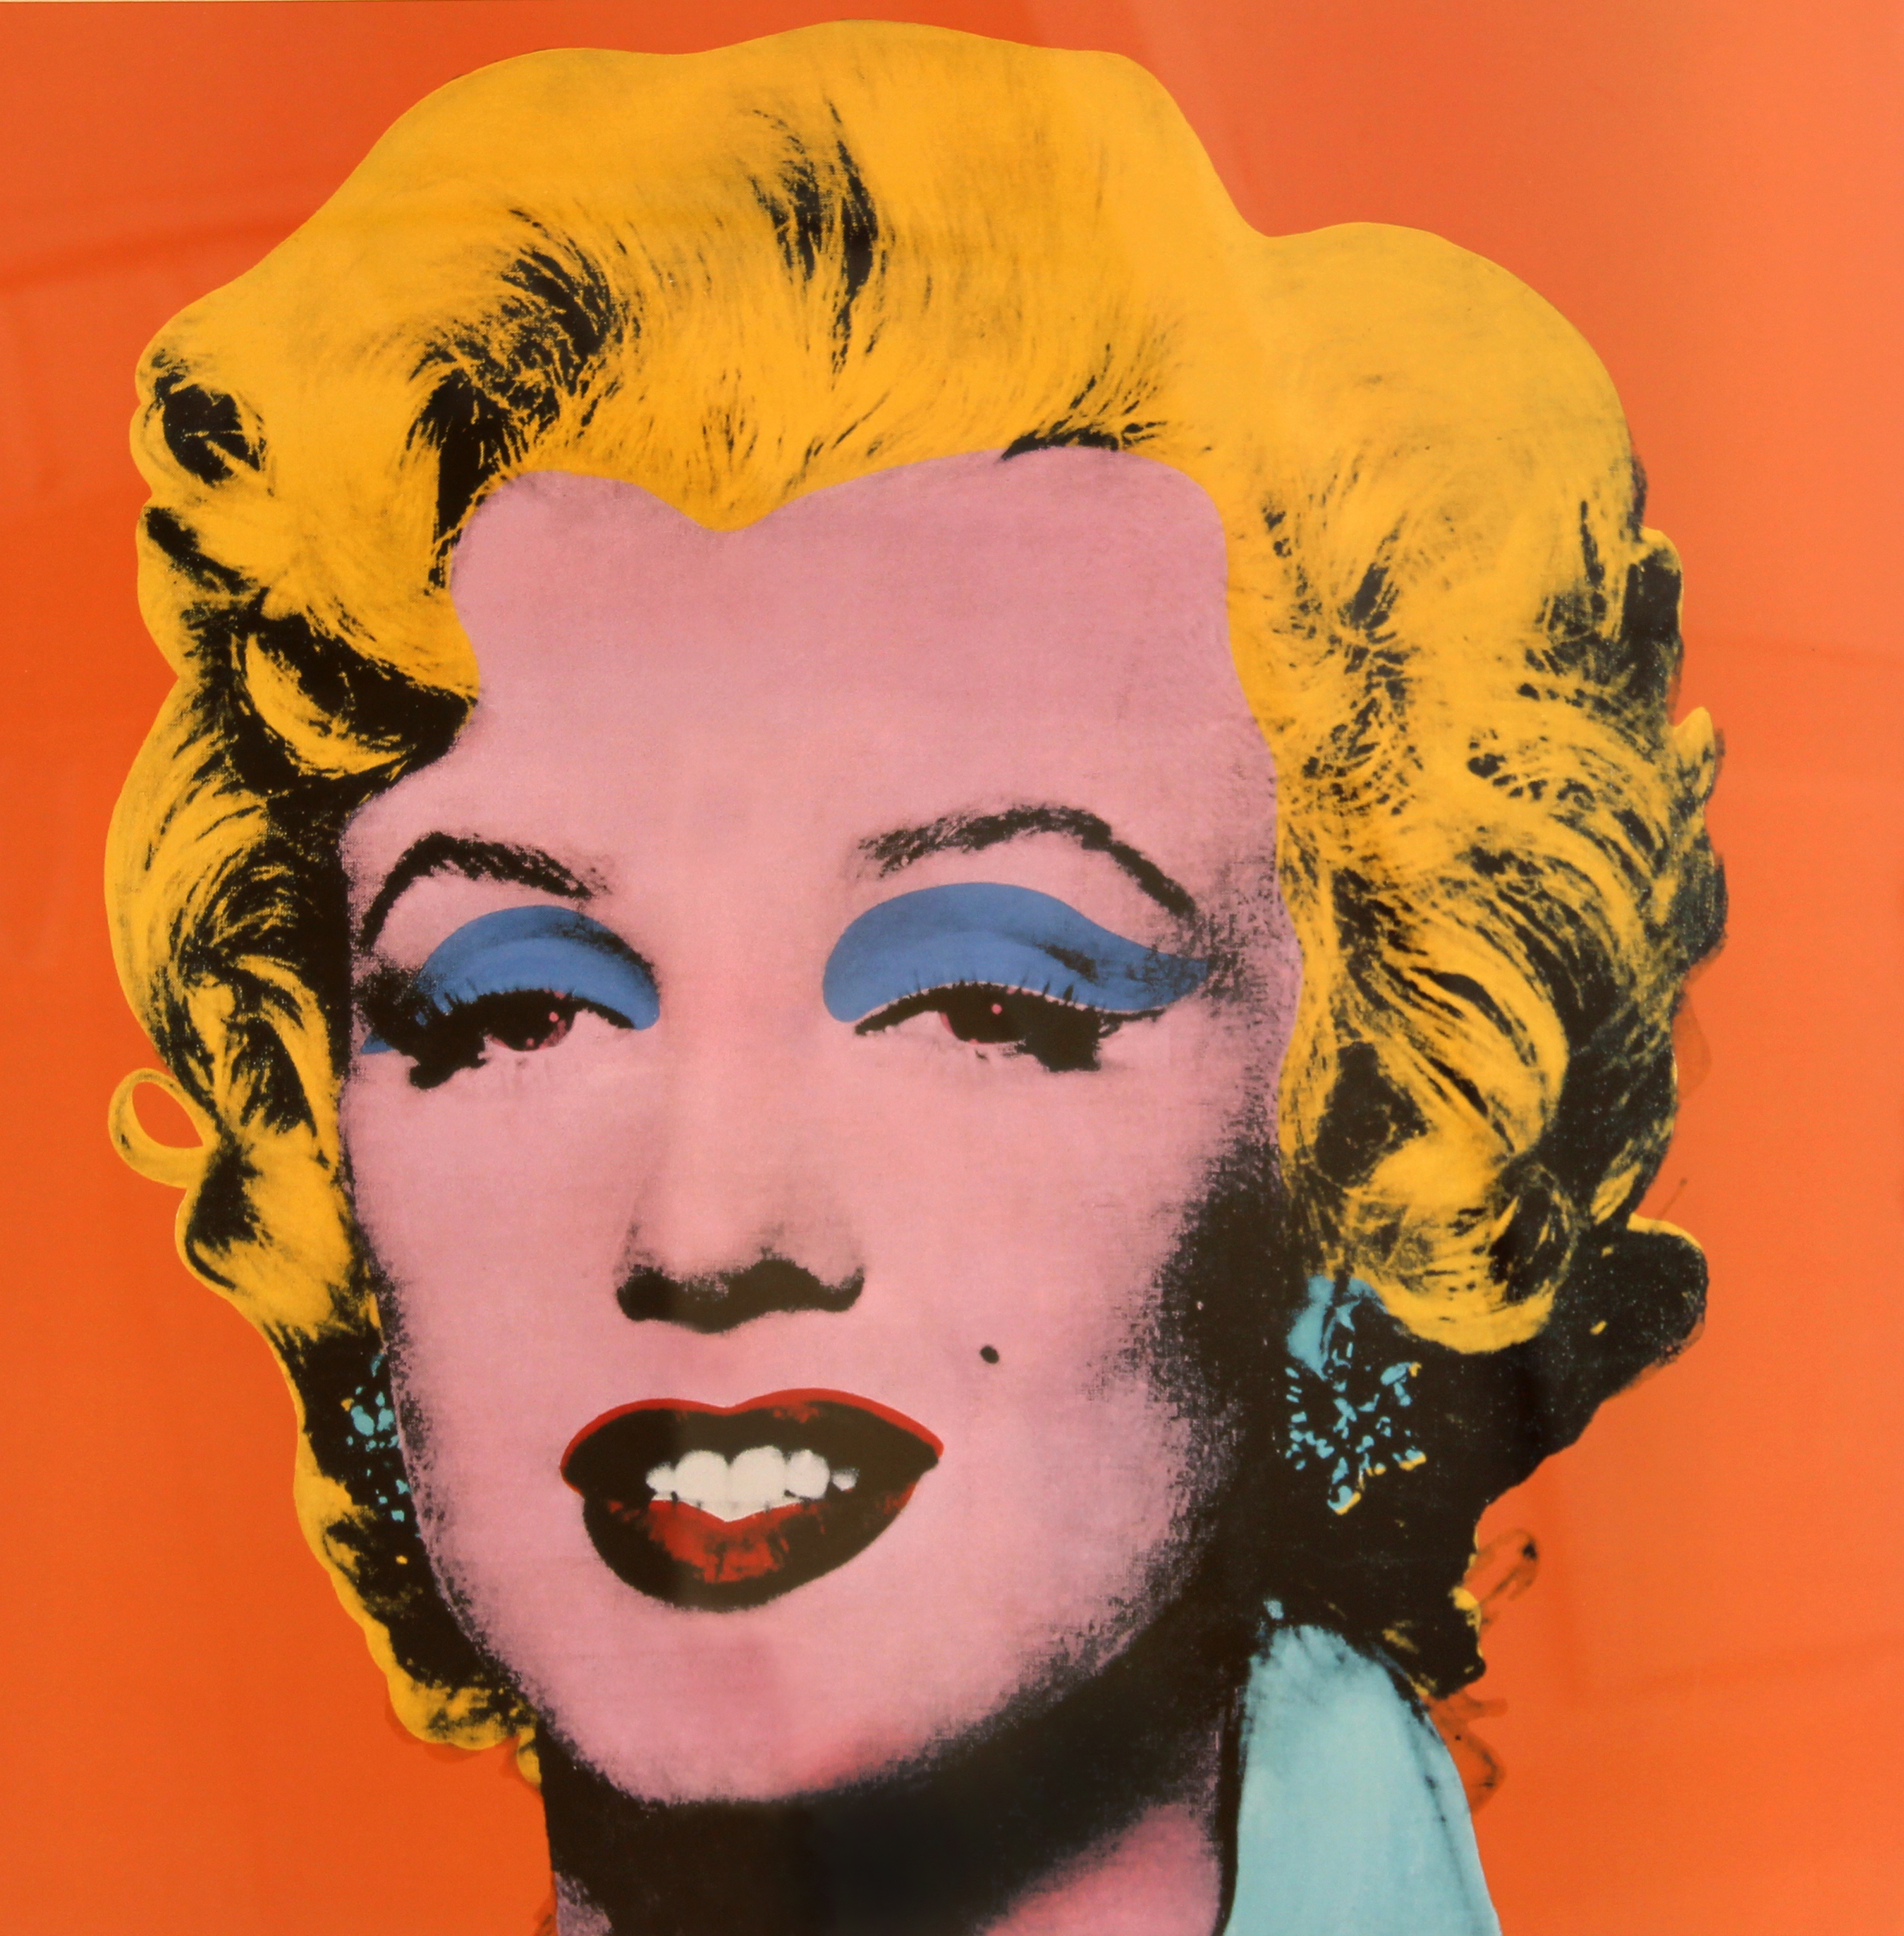 marilyn monroe by andy warhol medium dlr creativity in the classroom. Black Bedroom Furniture Sets. Home Design Ideas